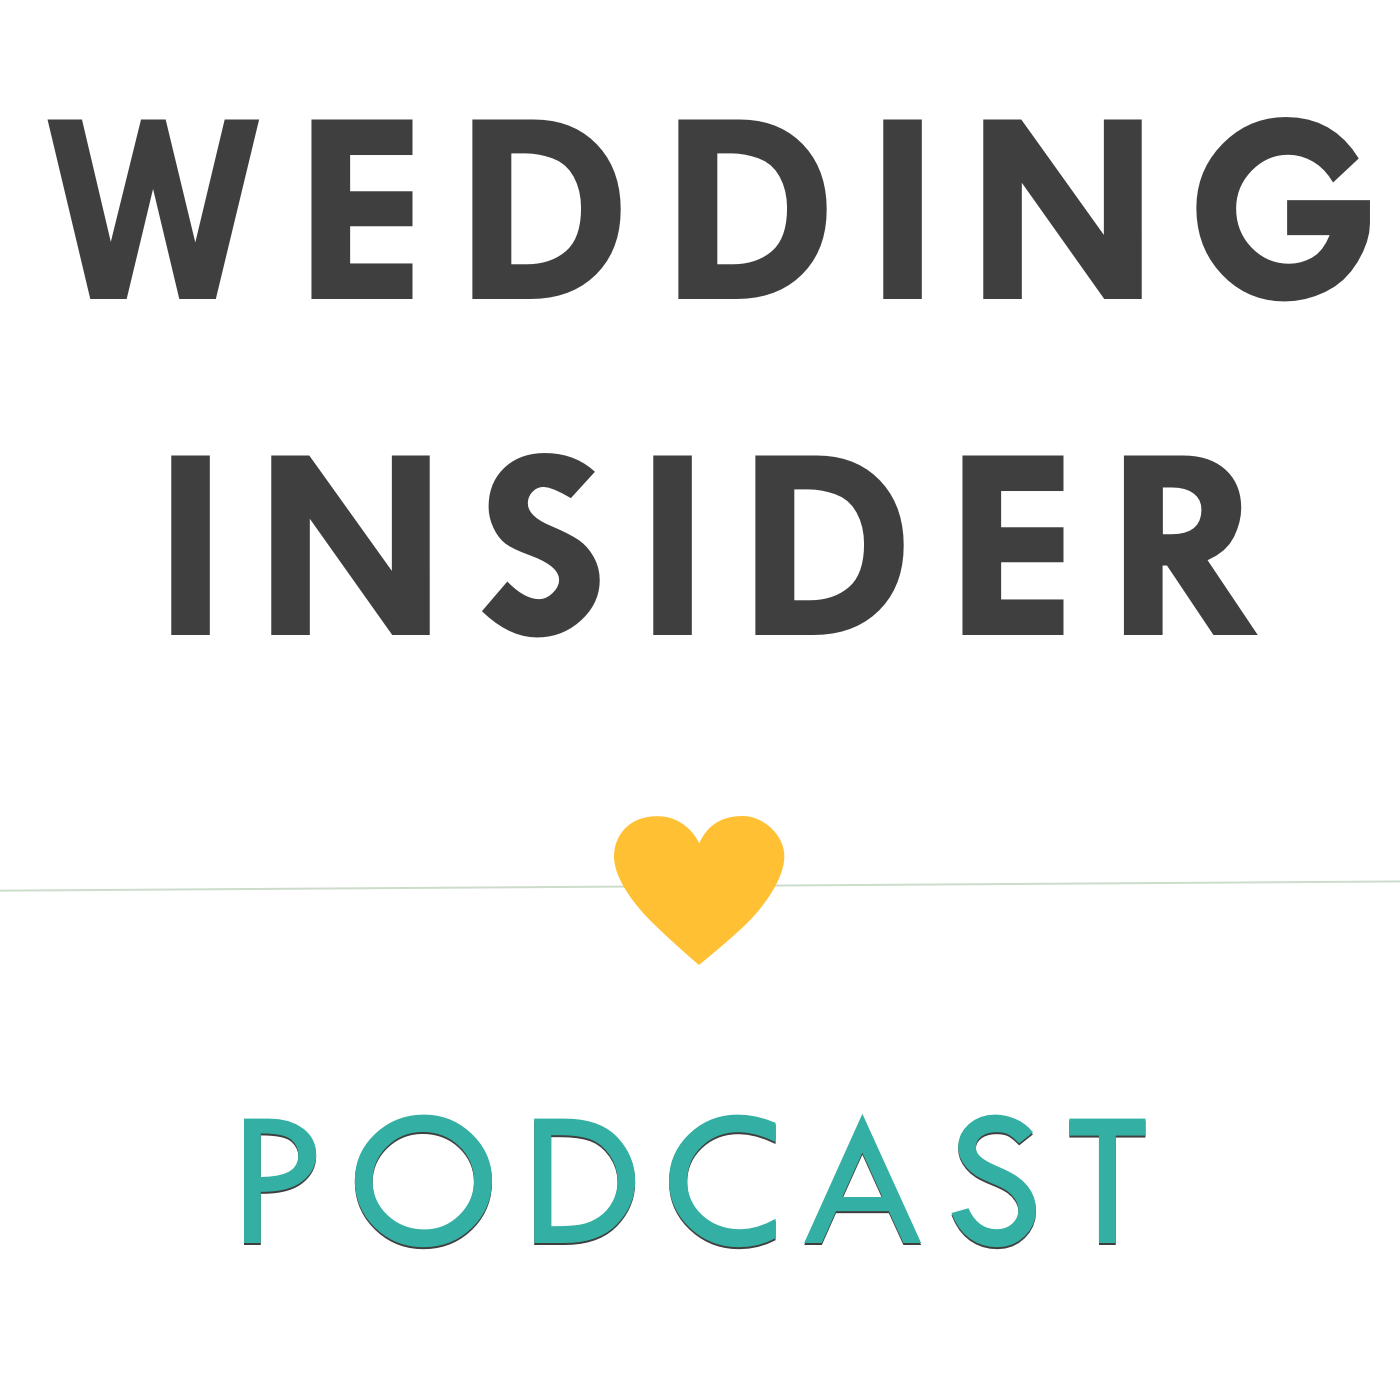 Podcast Episode #1 Introduction to the Wedding Insider Podcast